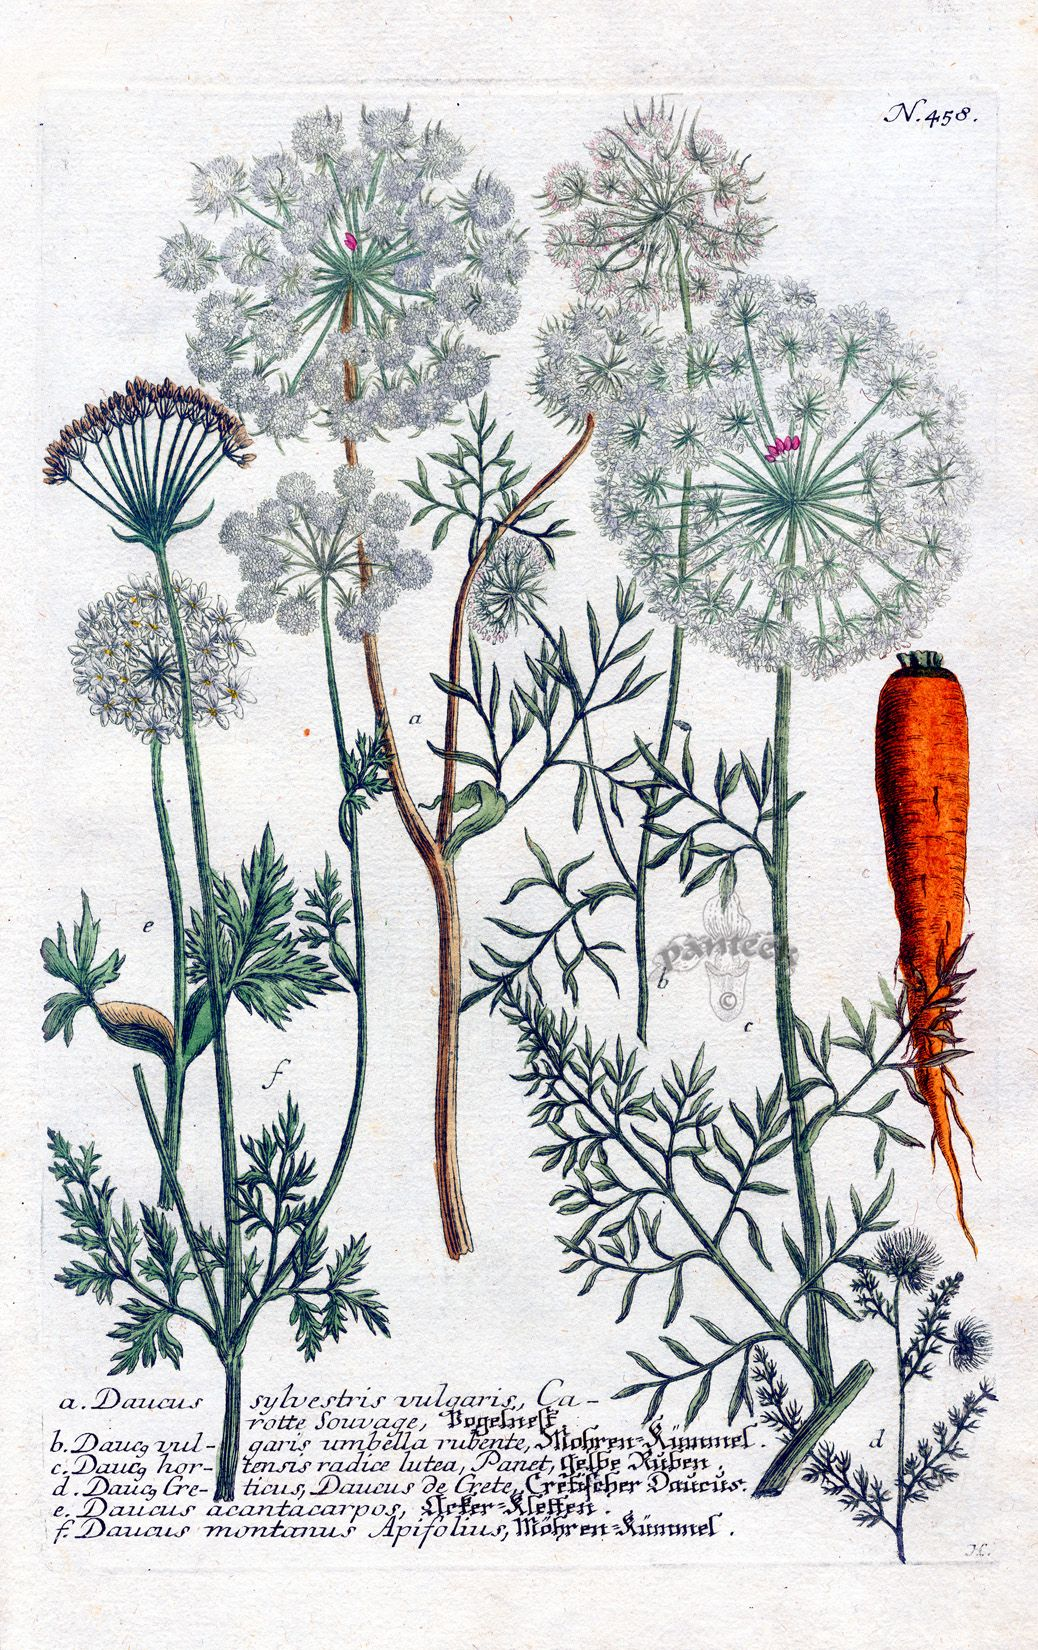 Johann Wilhelm Weinmann...I KNEW I smelled 'carrots' when I handled Queen Ann's Lace!